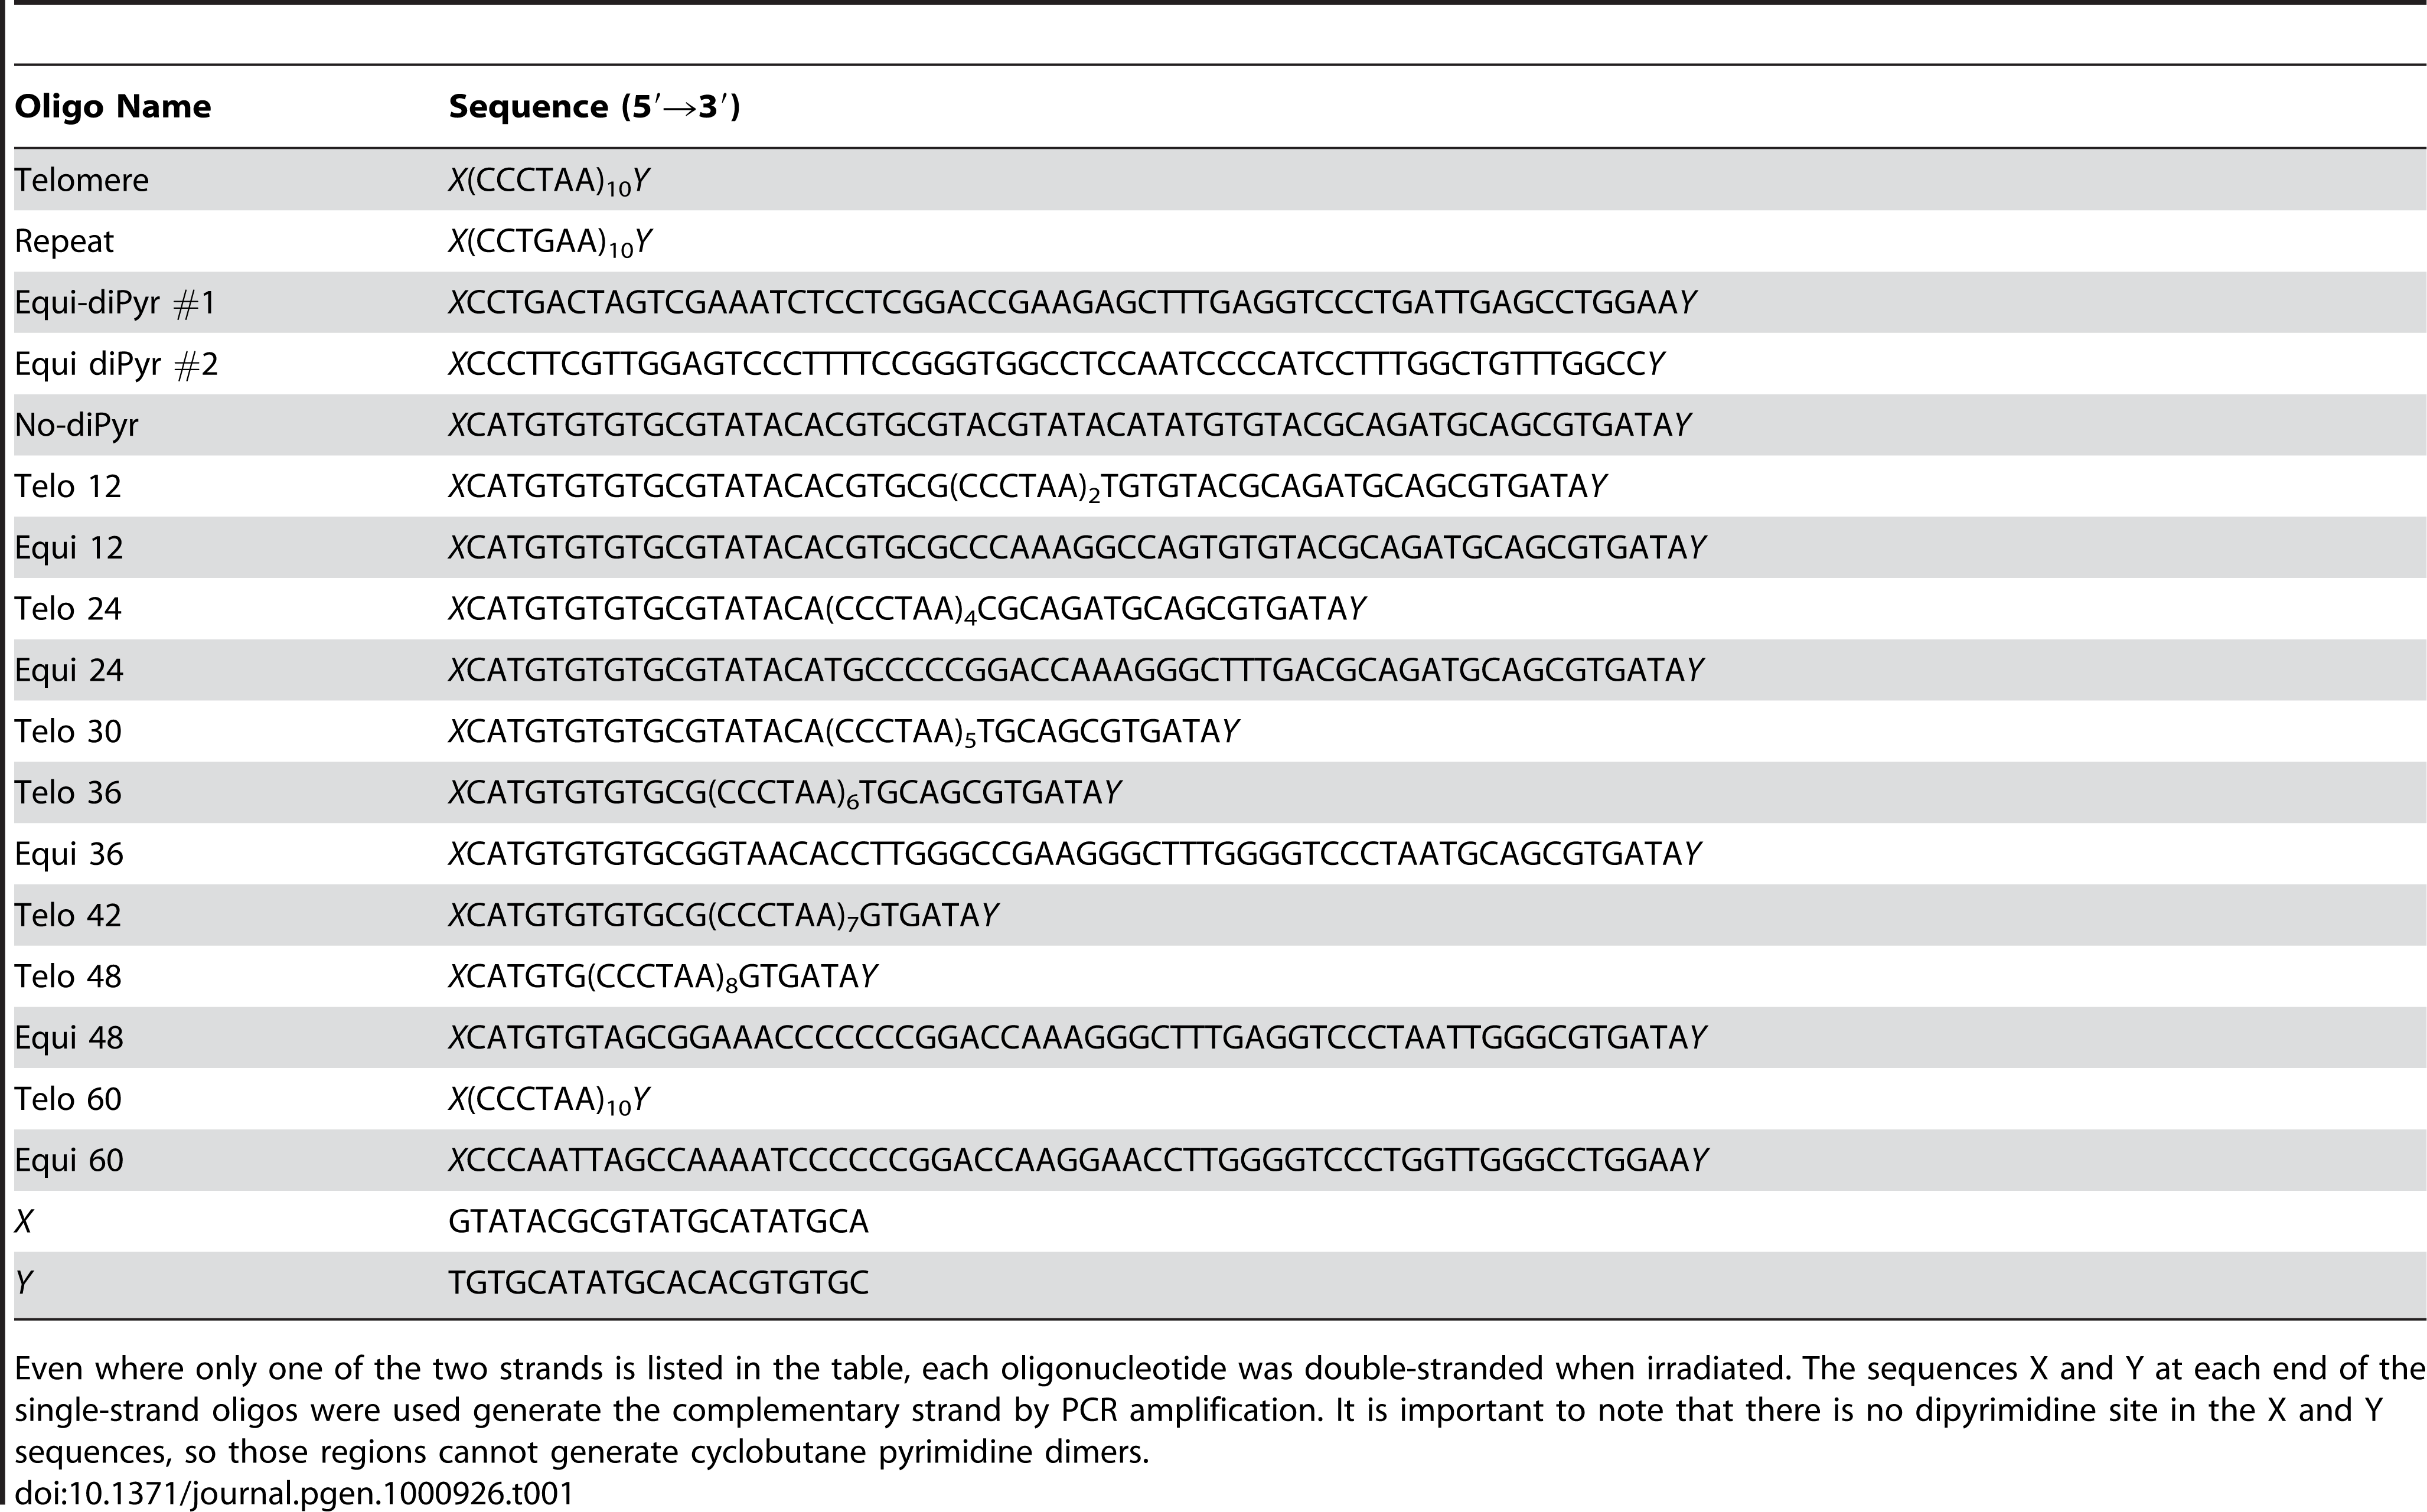 List of oligonucleotides used for the dot-blot experiment.